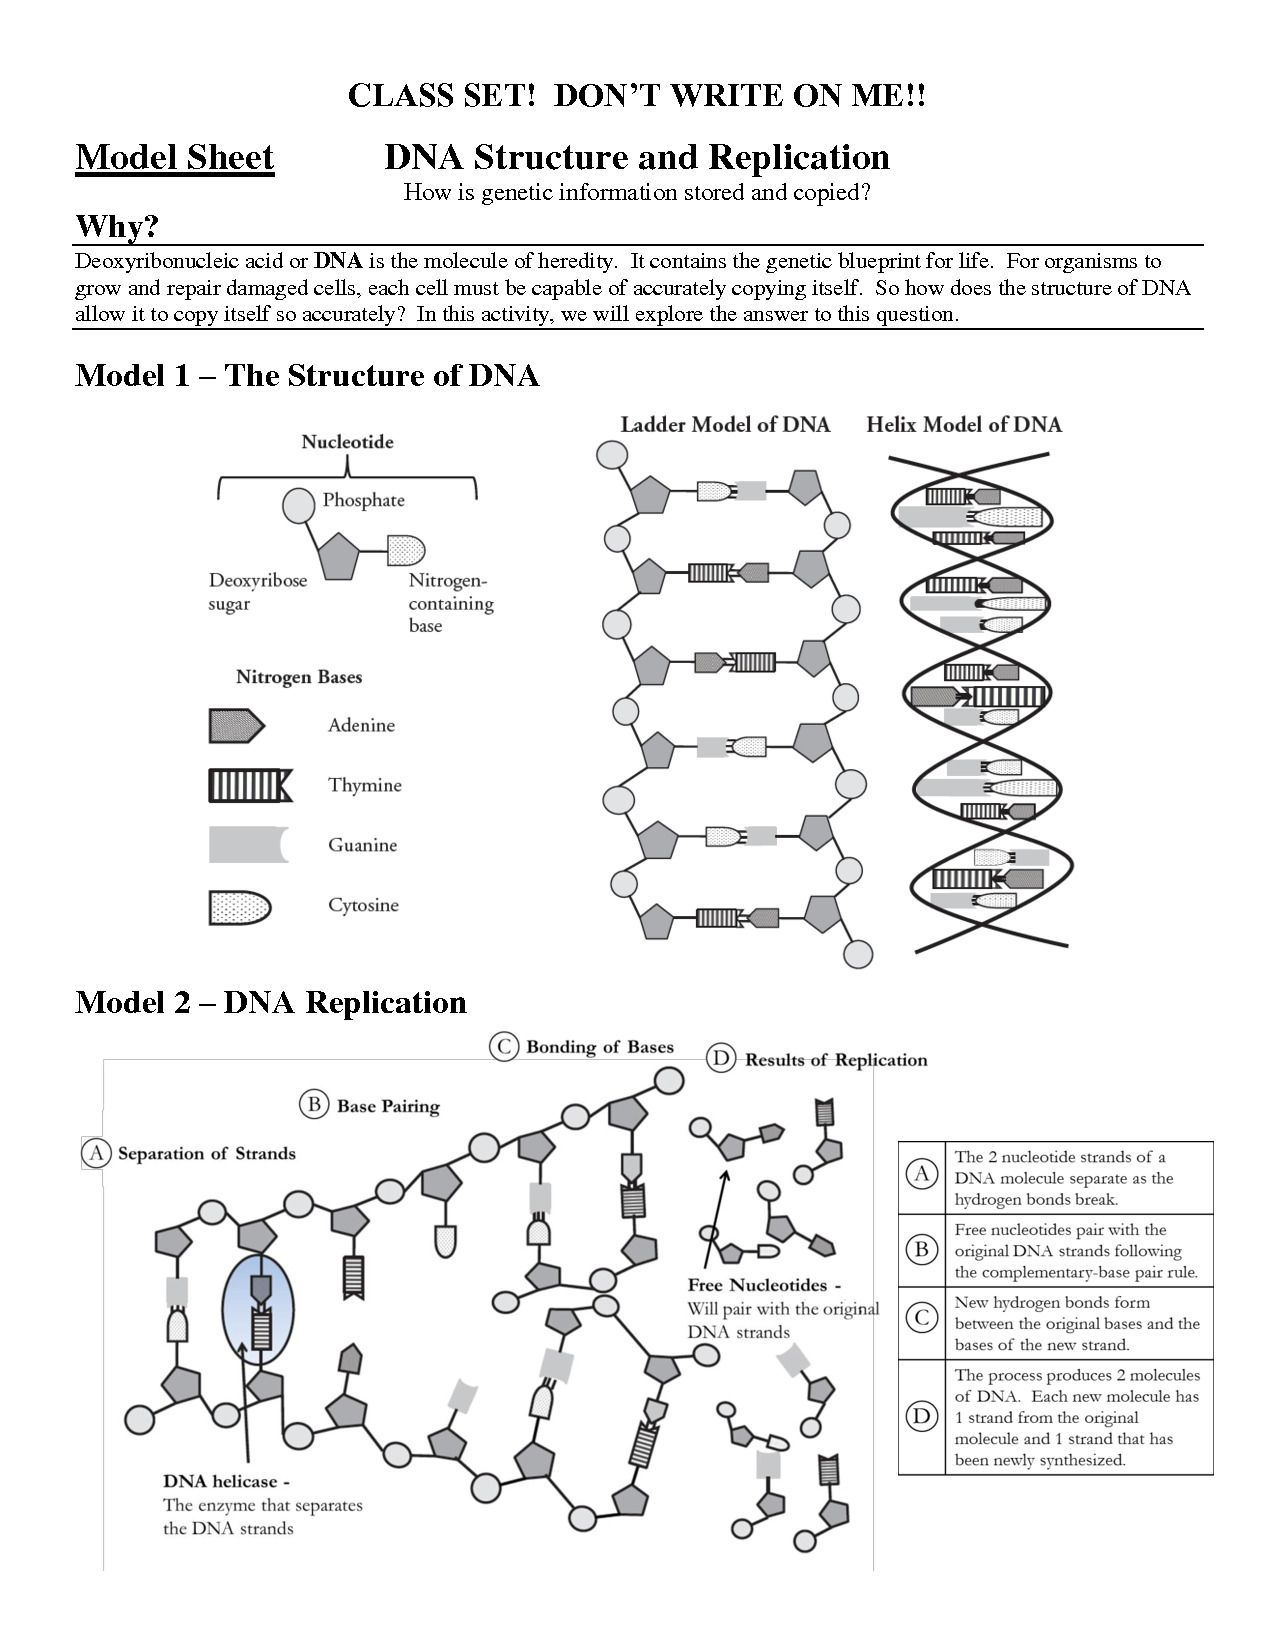 DNA The Molecule Of Heredity Worksheet